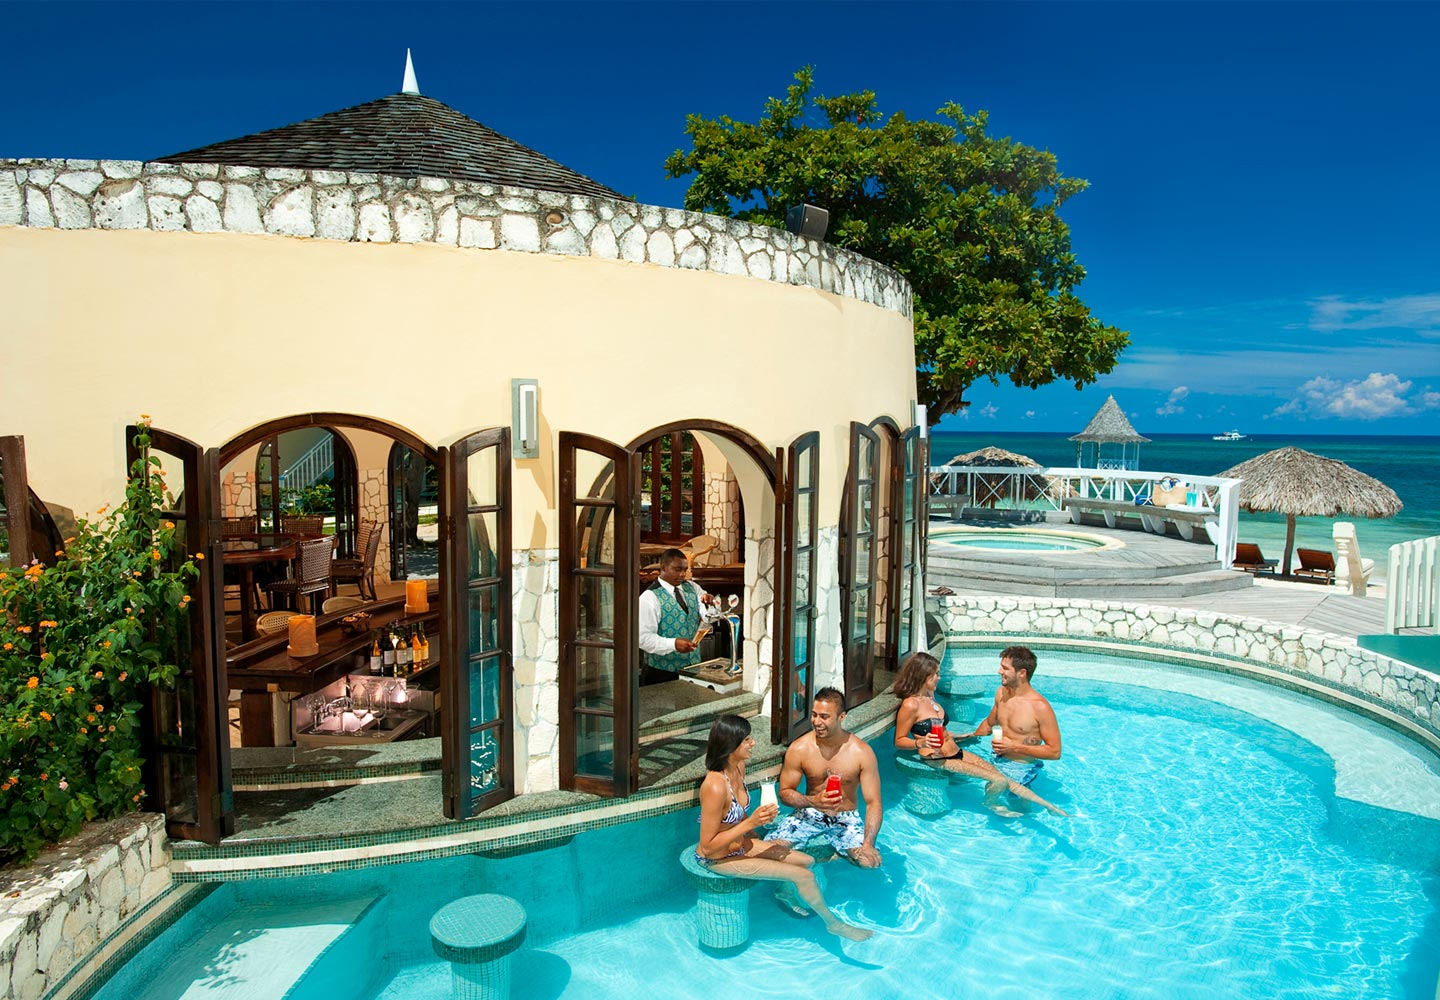 Travel Agency All-Inclusive Resort Sandals Montego Bay 037